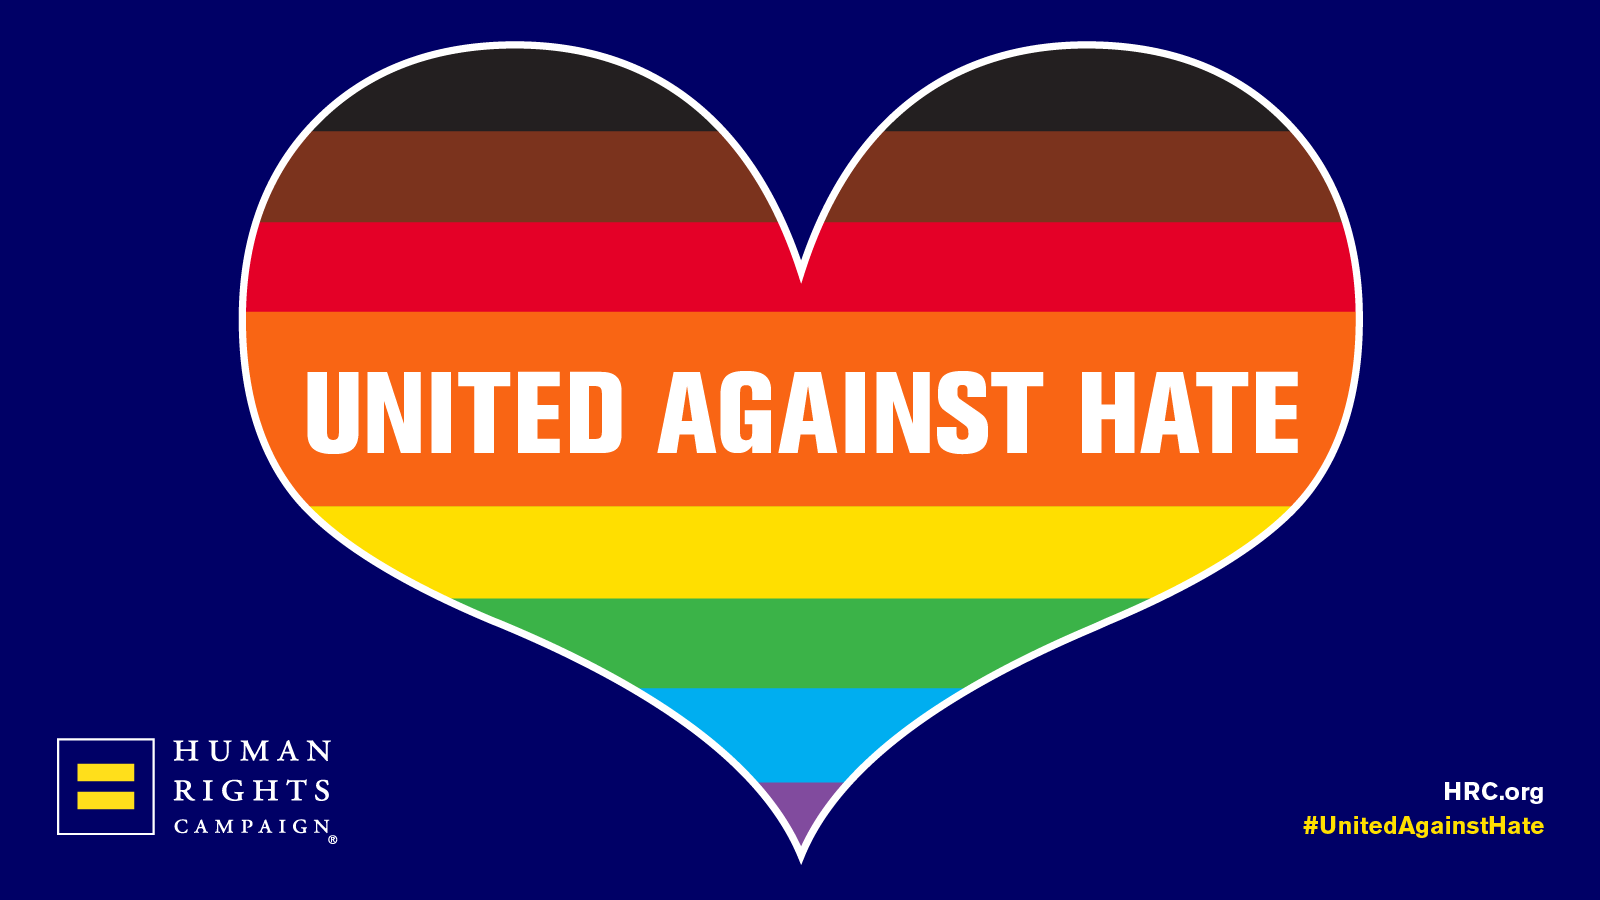 HRC, Partners and Allies United Against Hate One Year After Charlottesville White Supremacist Rally